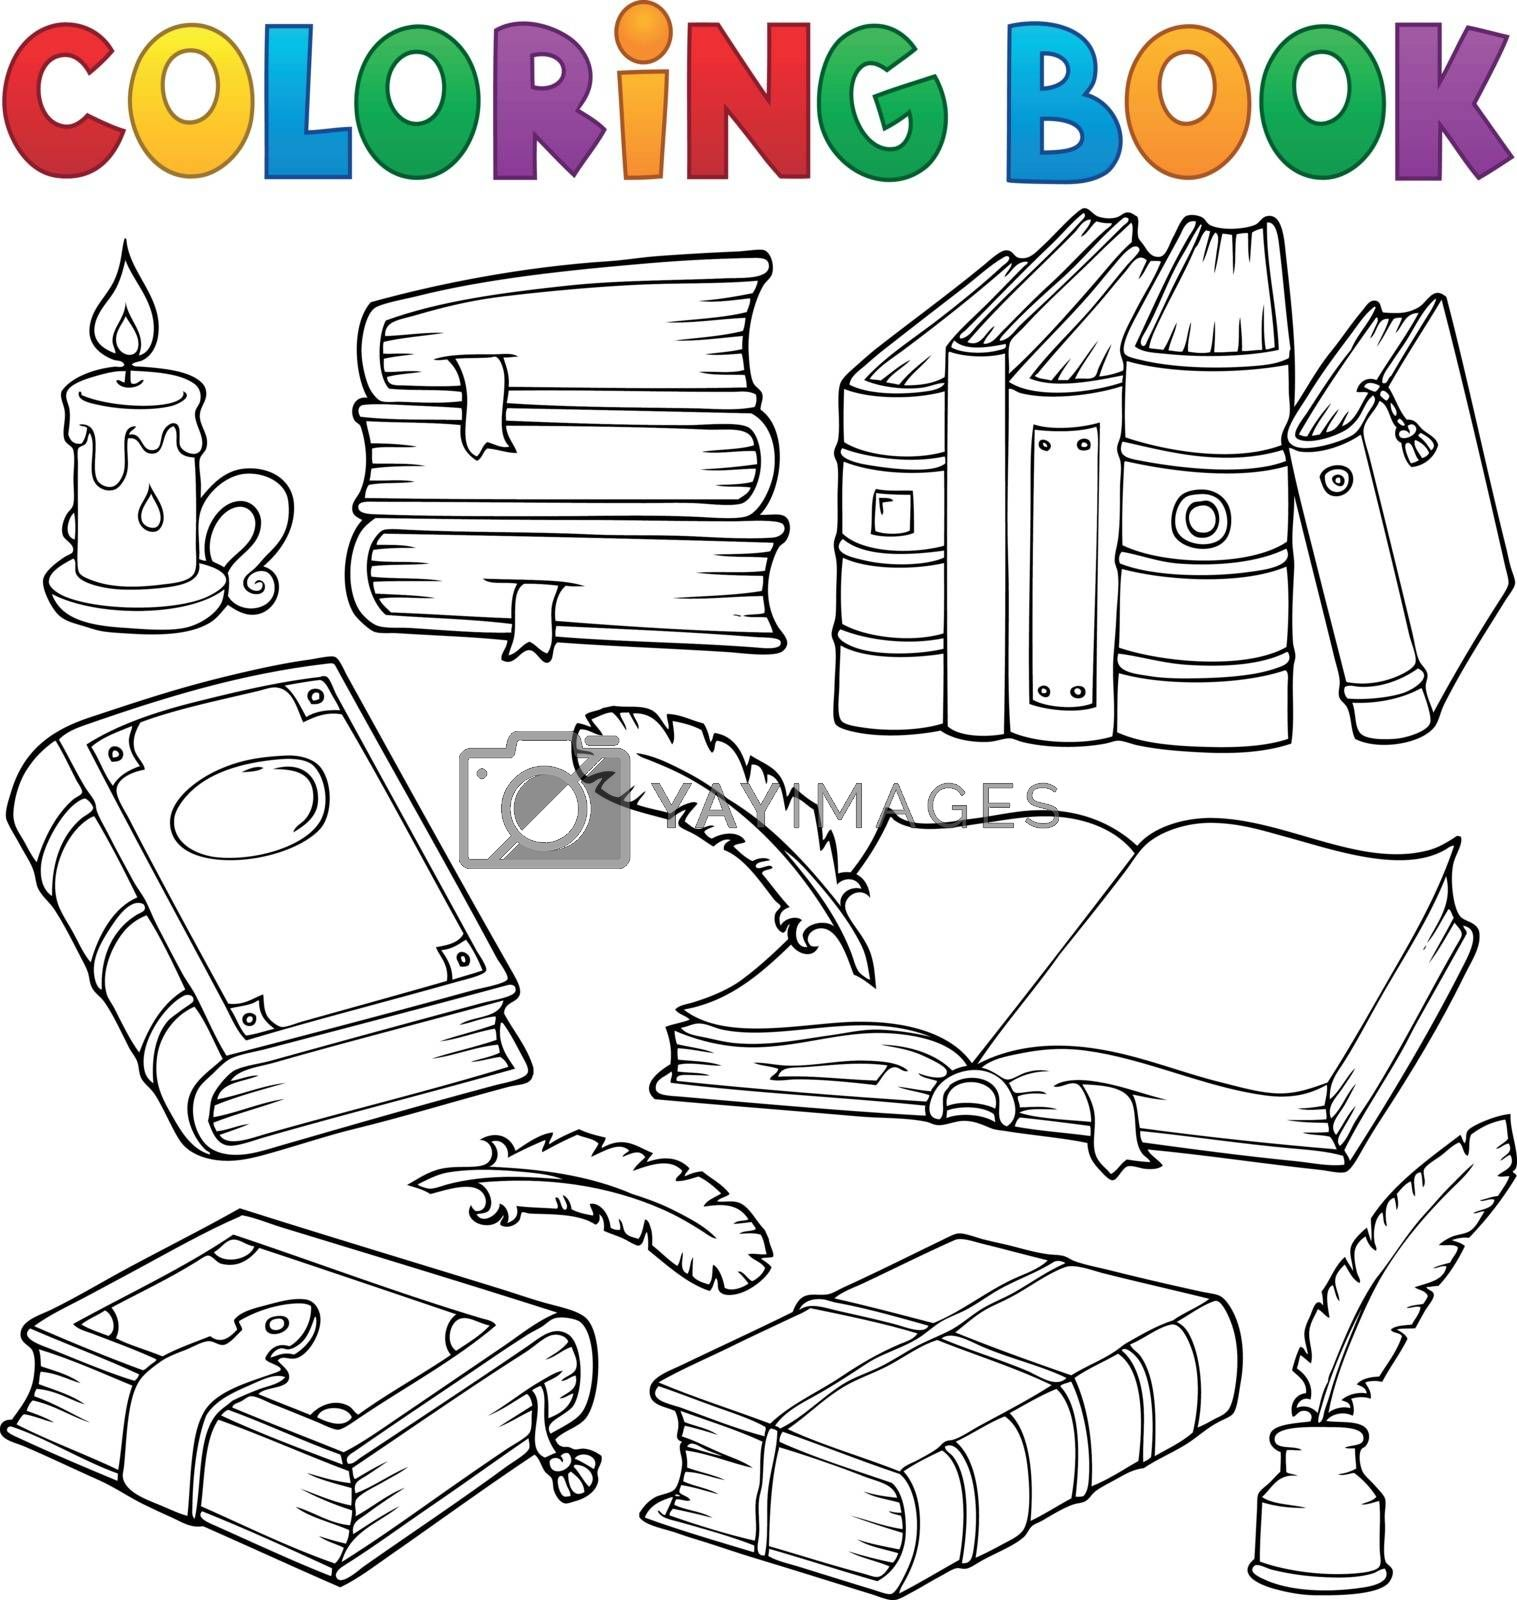 Coloring book old books theme set 1 - eps10 vector illustration.